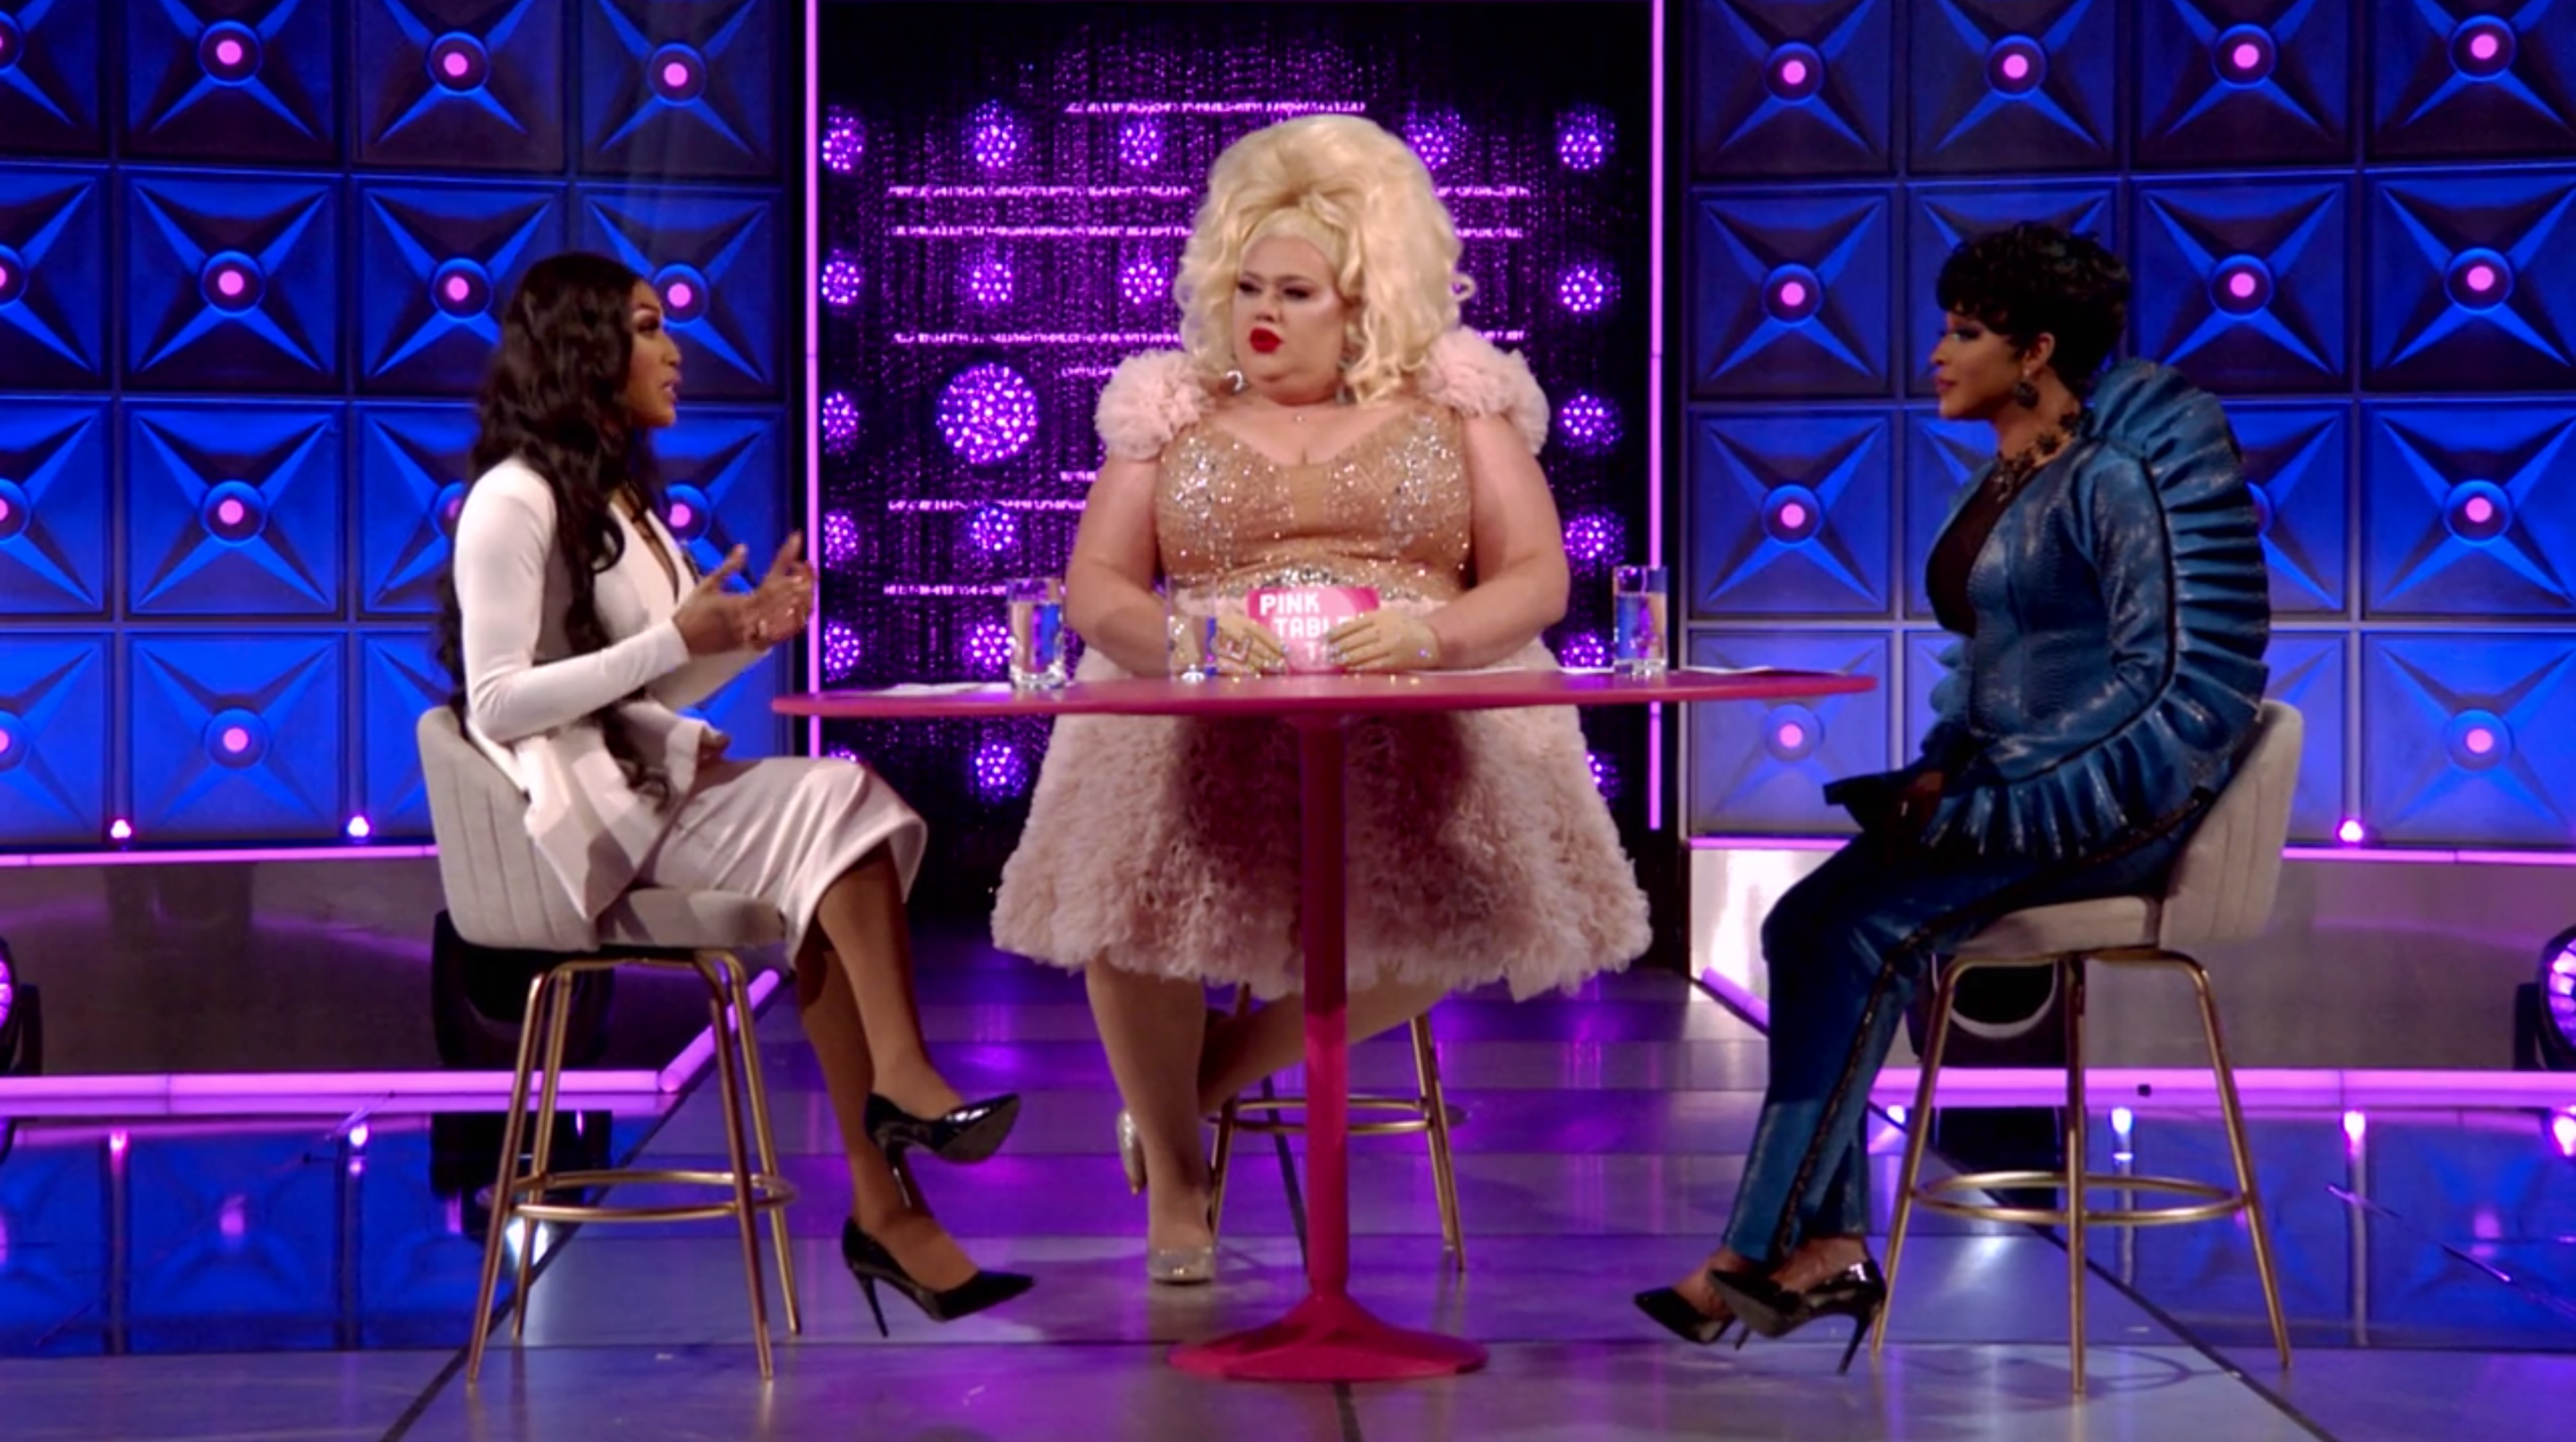 A'keria, Eureka and Trinity's Pink Table Talk about sex.